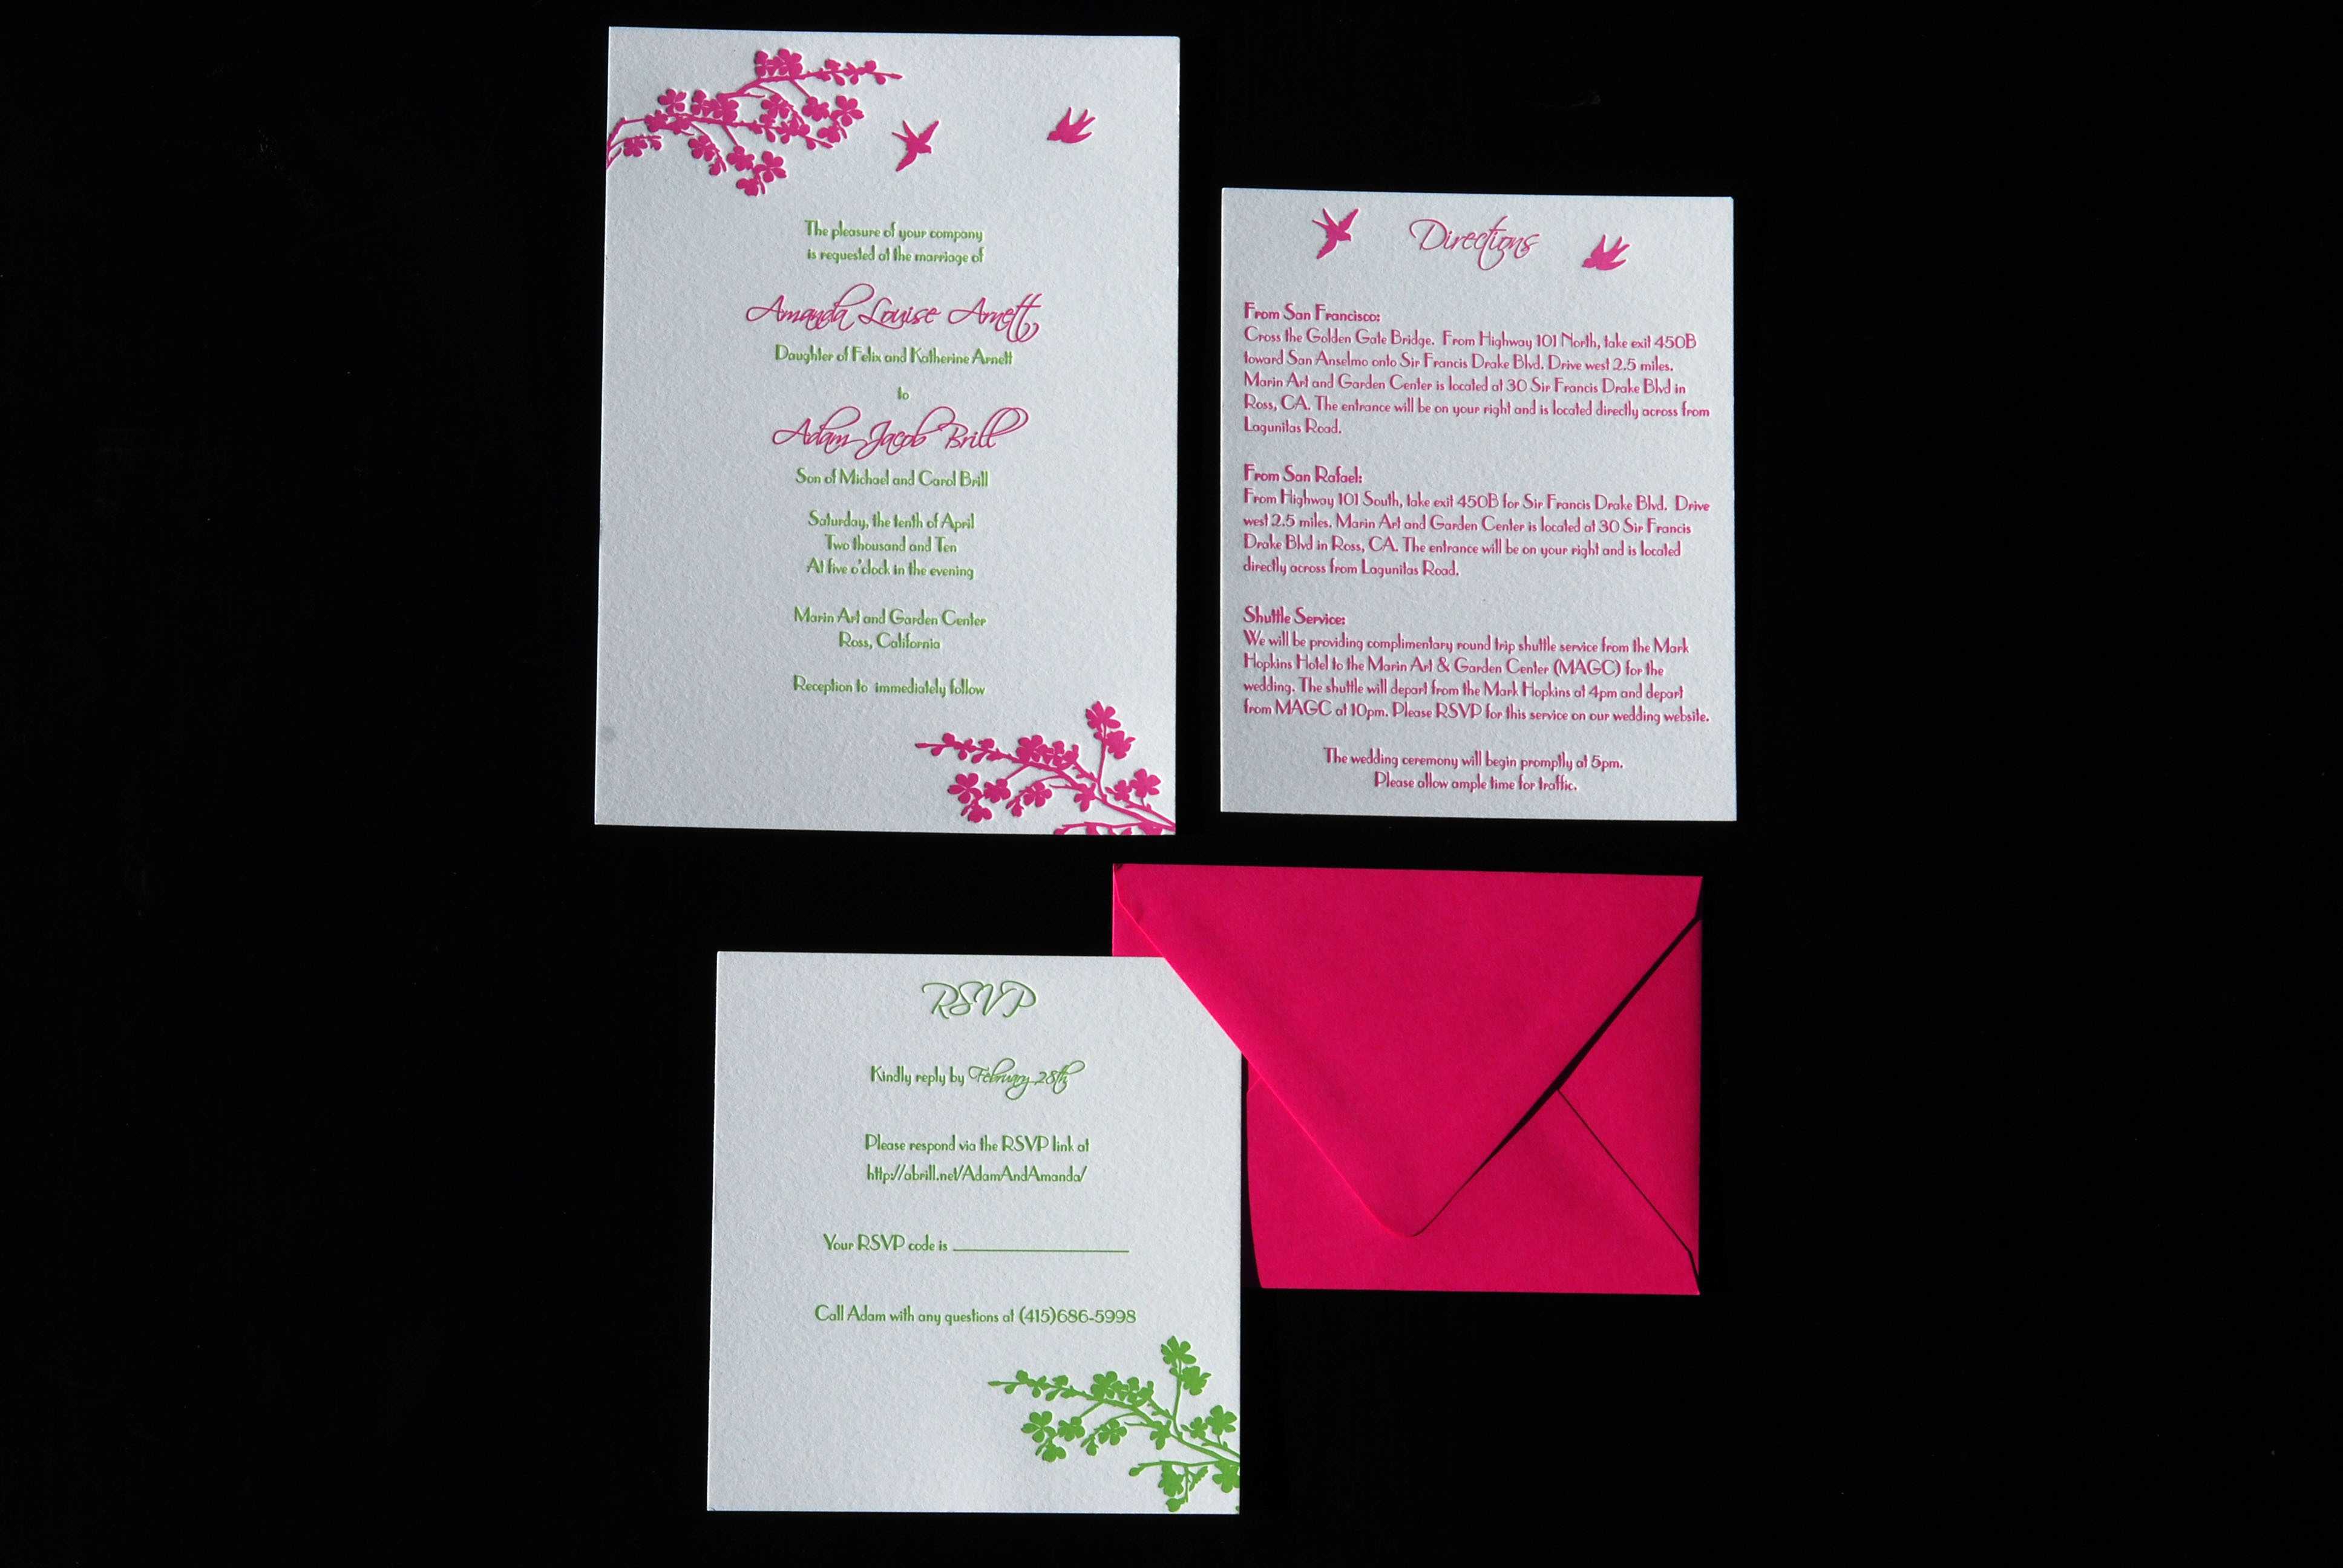 Stationery, pink, green, invitation, Summer, Invitations, Bird, Blossom, Branch, Cherry, Letterpress, Card, Apple, Response, The aerialist press